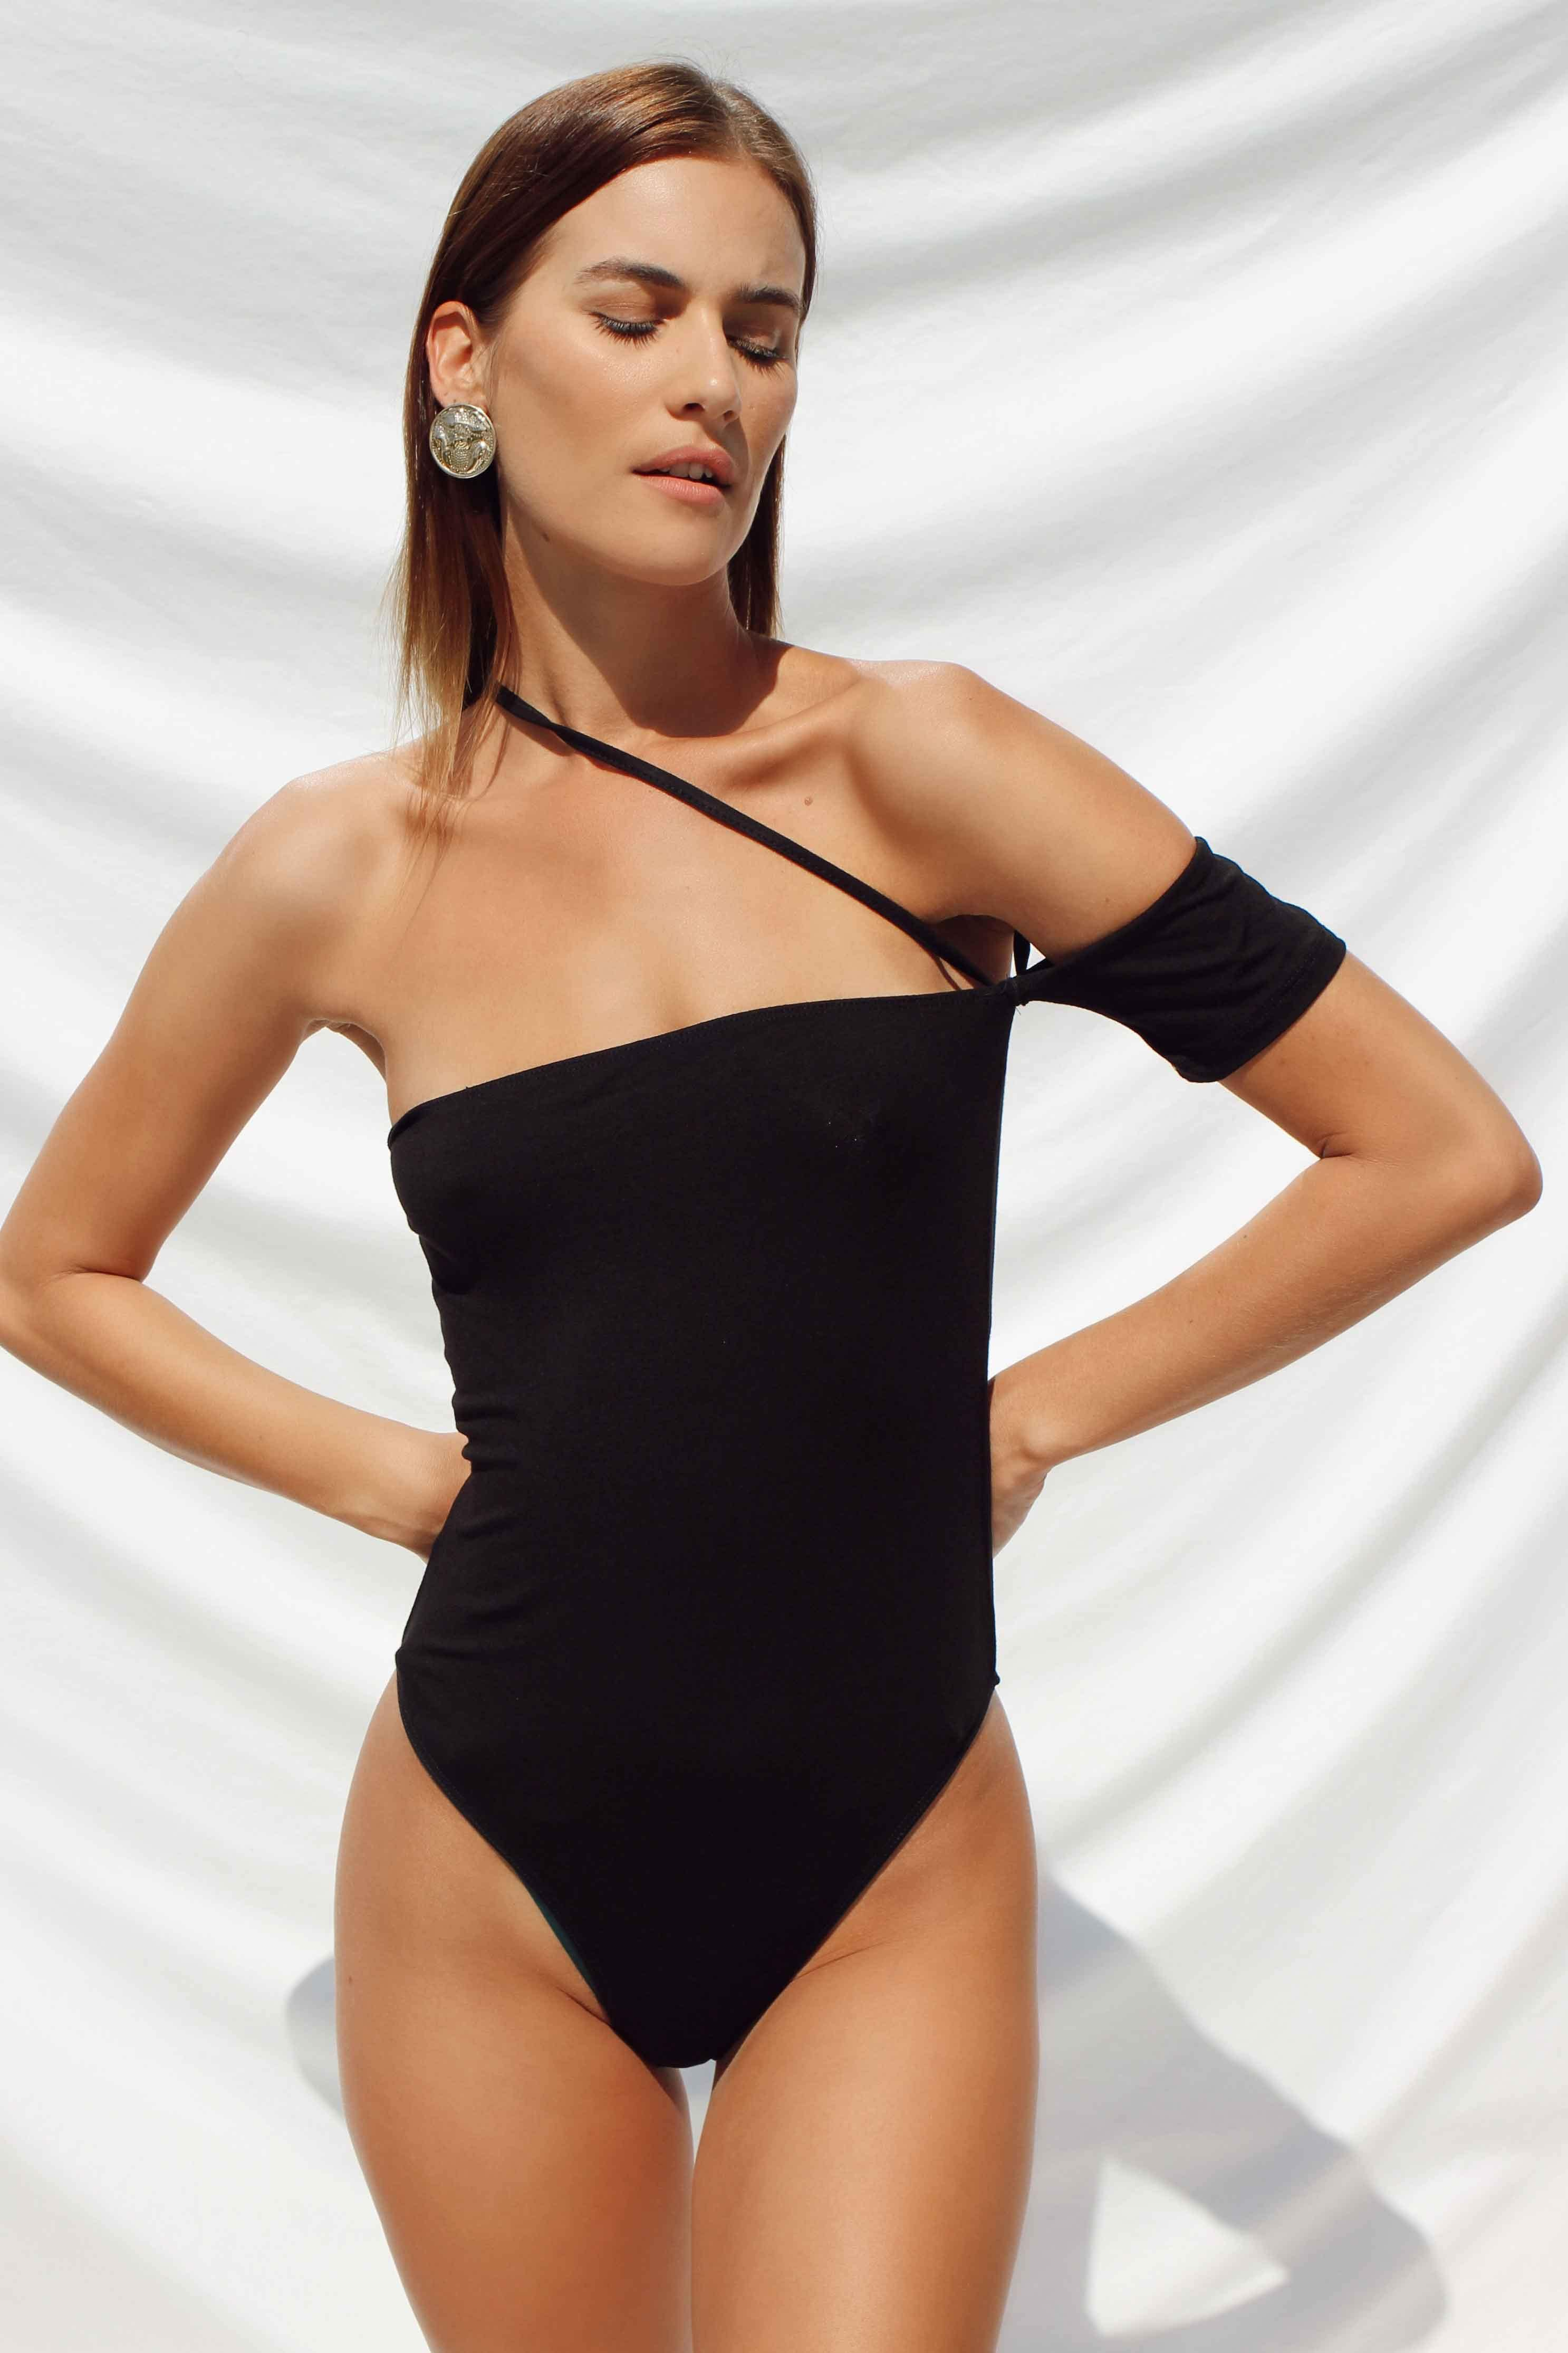 ARUBA BODYSUIT | Women's Online Shopping | CHICLEFRIQUE  (4346001621081)